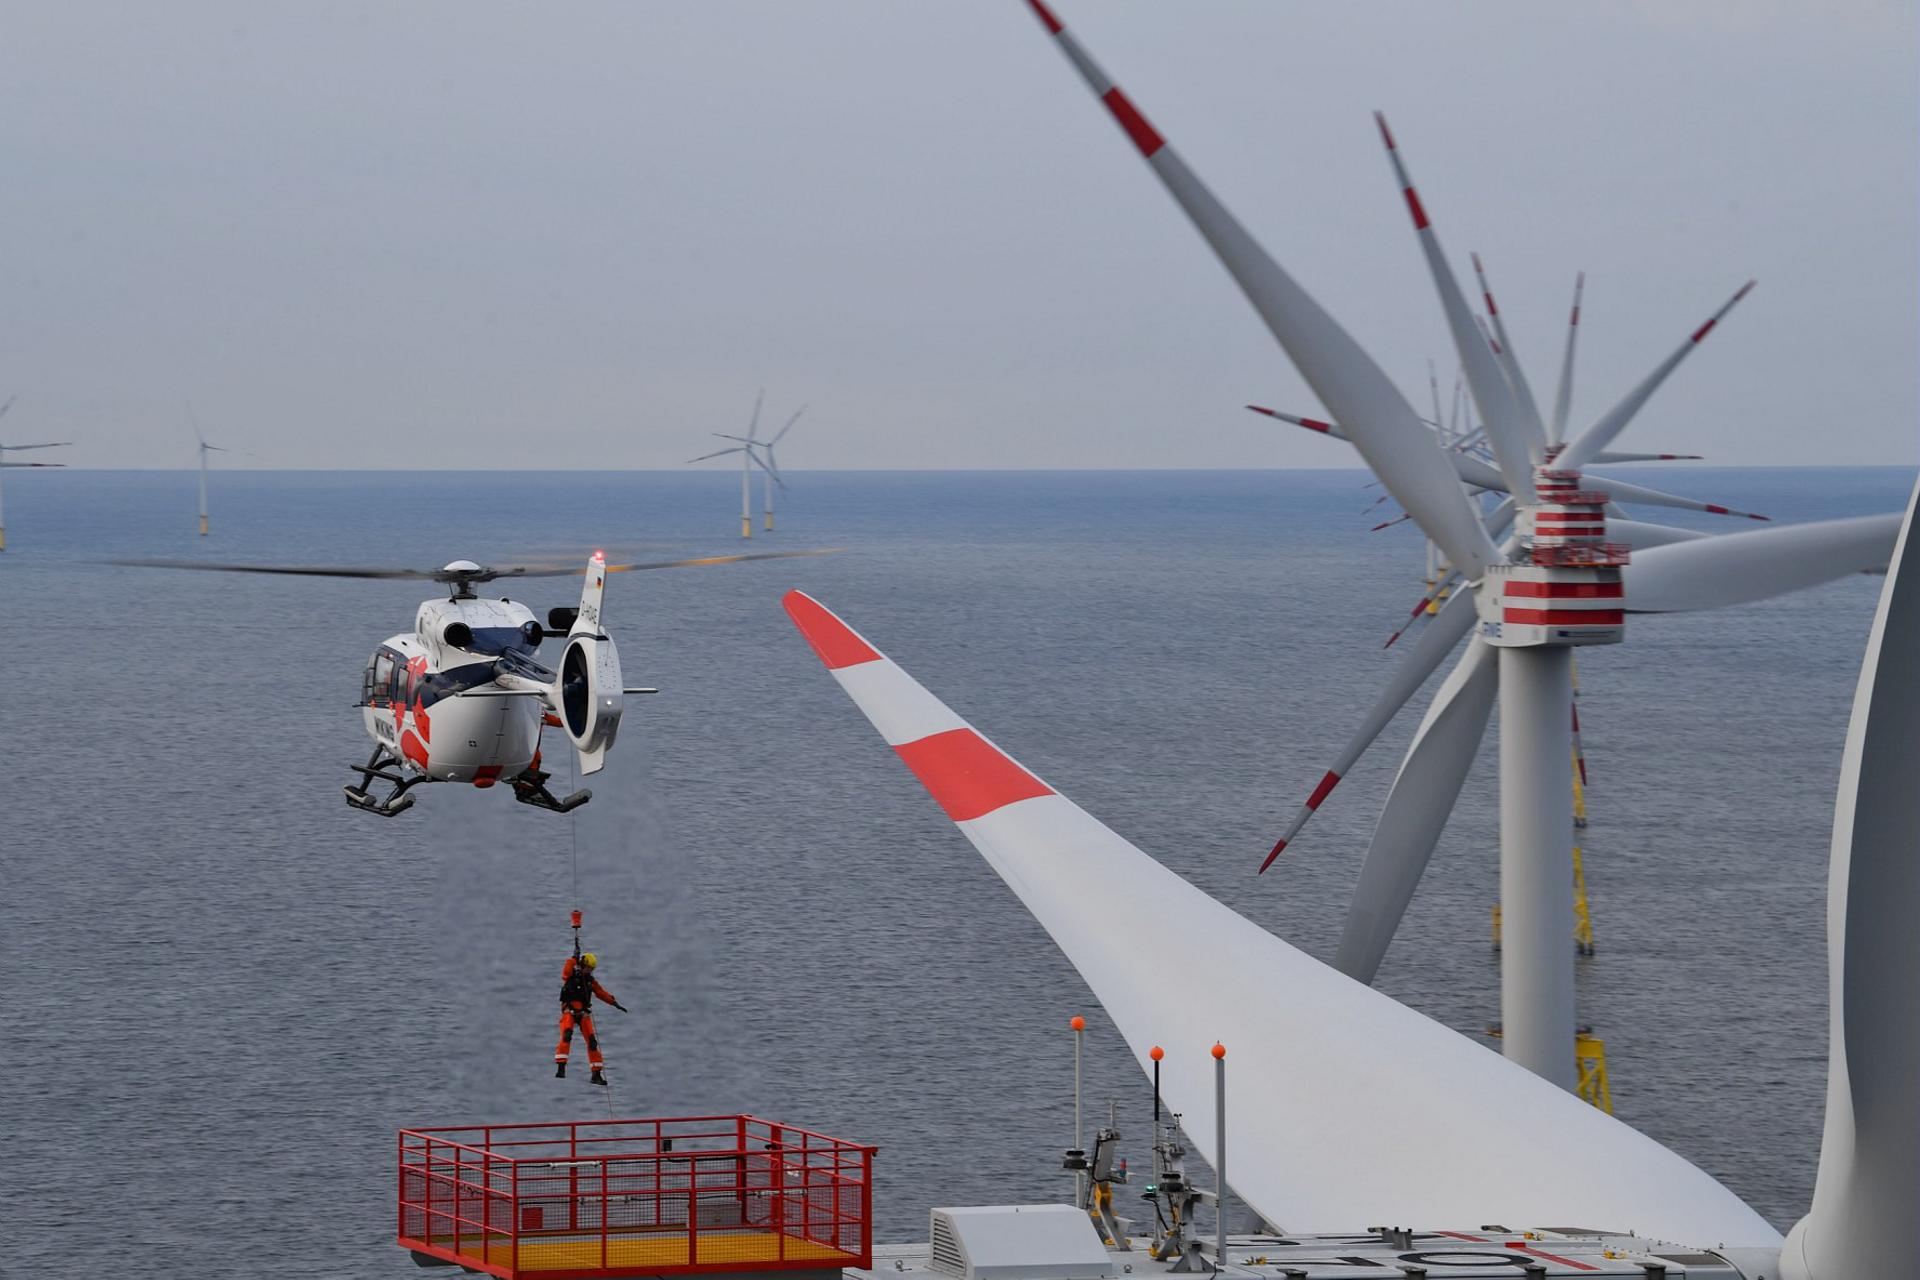 Wiking just took delivery of a new H145, bringing its fleet to four H145s used in sea pilot transfers,  and technician wind farm transports from their base Wilhelmshaven, Emden, Wick (UK) and soon from Beccles (UK), Eemshaven and Den Helder (NL).